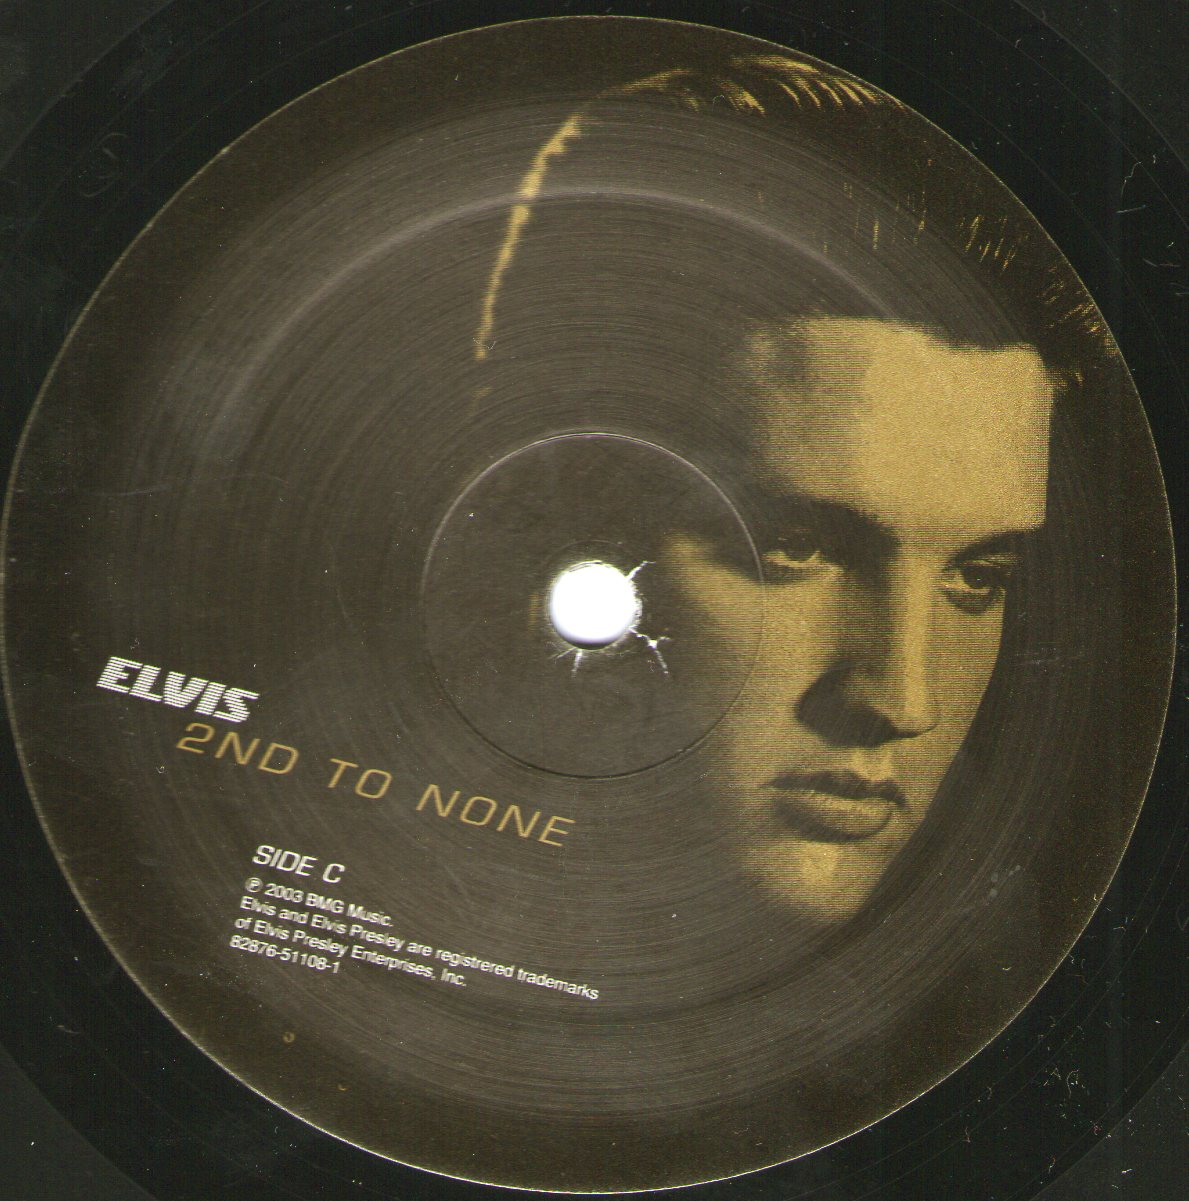 ELVIS 2ND TO NONE Img232m4f61